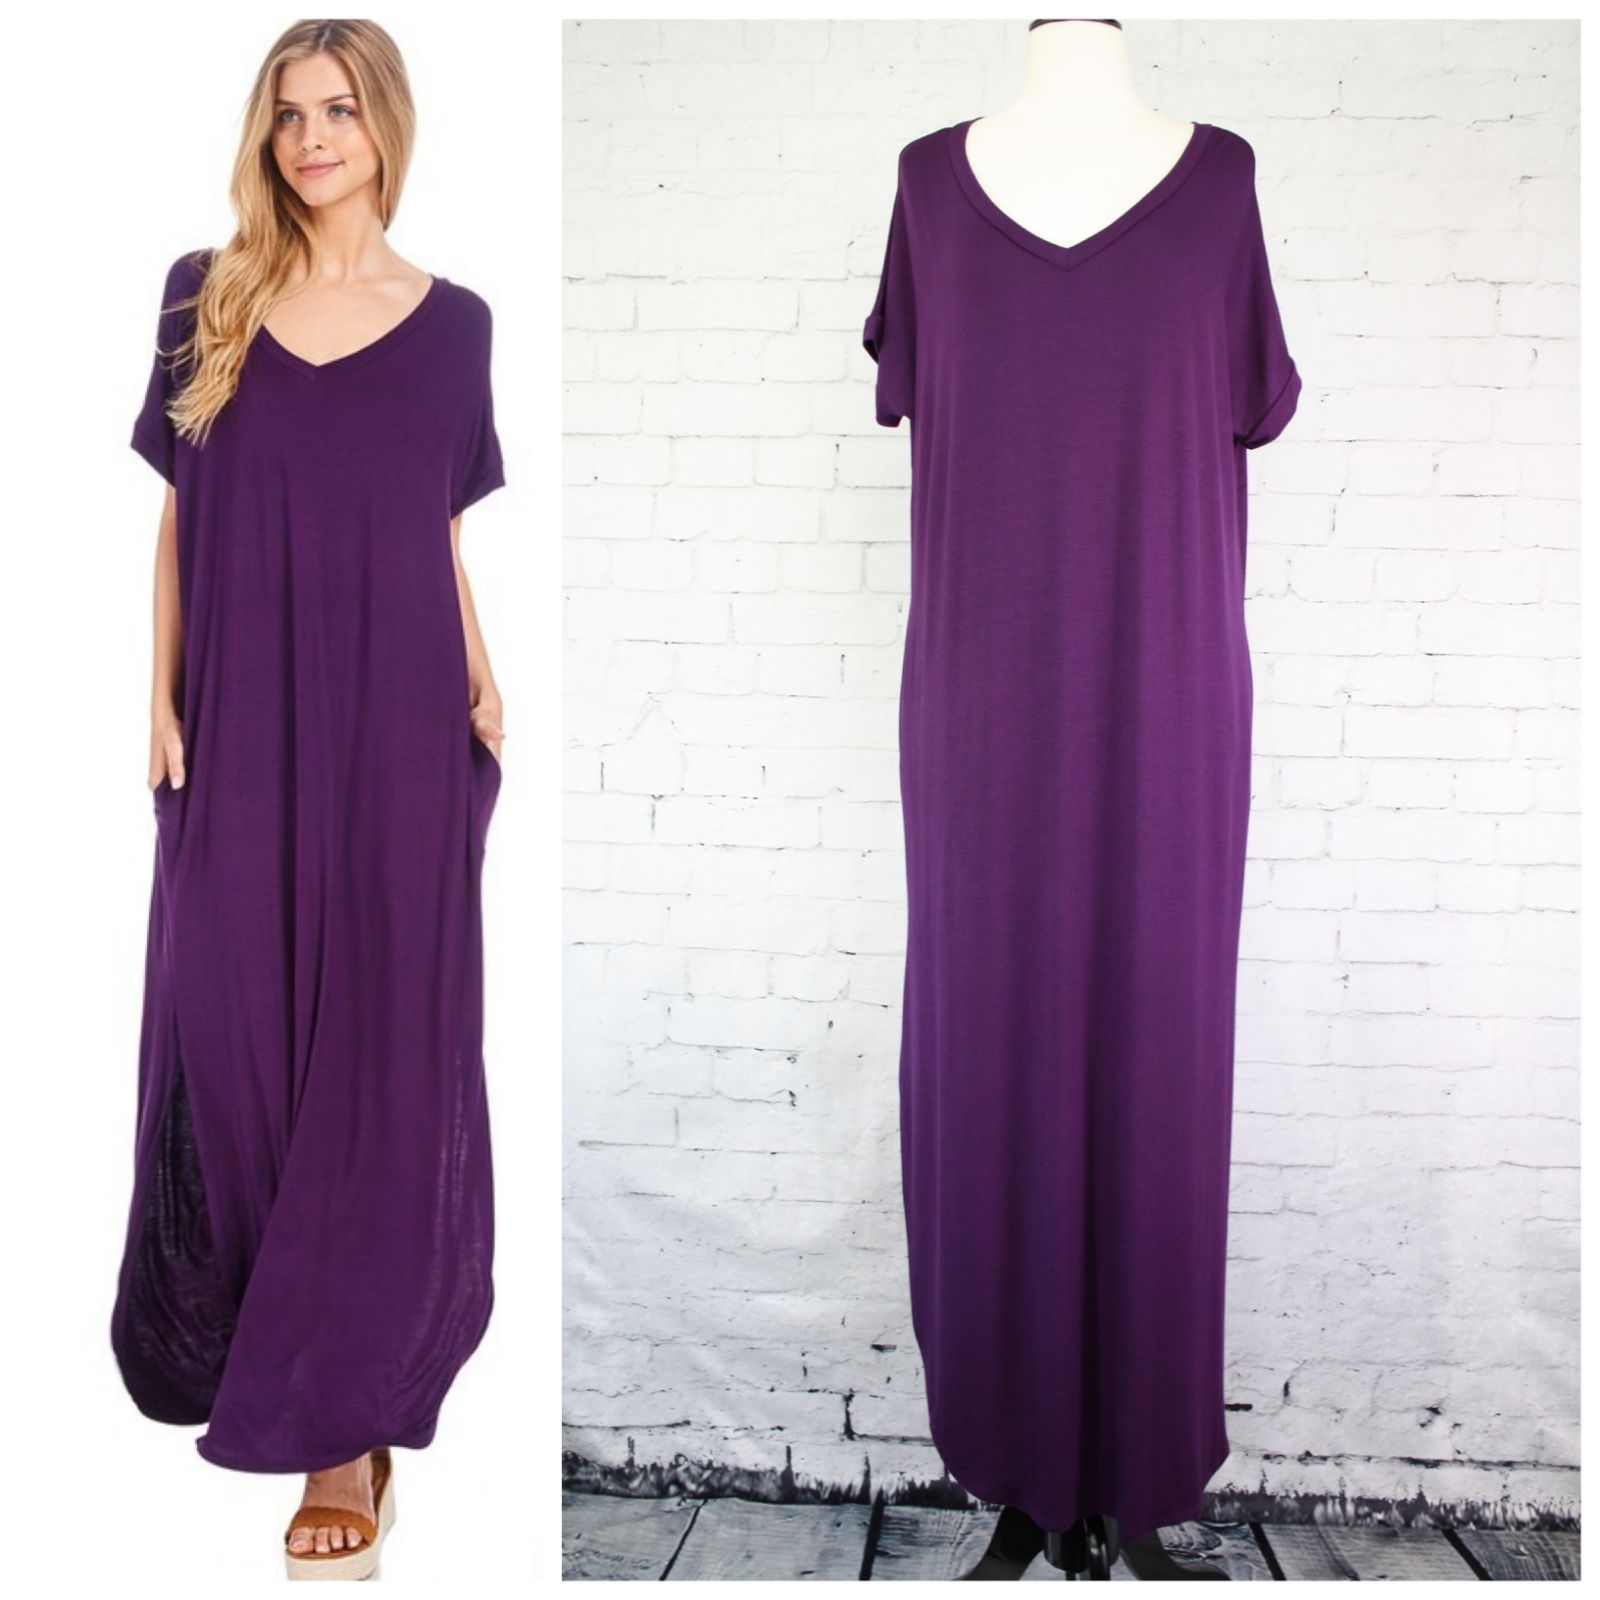 Loose fitting deep purple vneck maxi with short sleeves and side